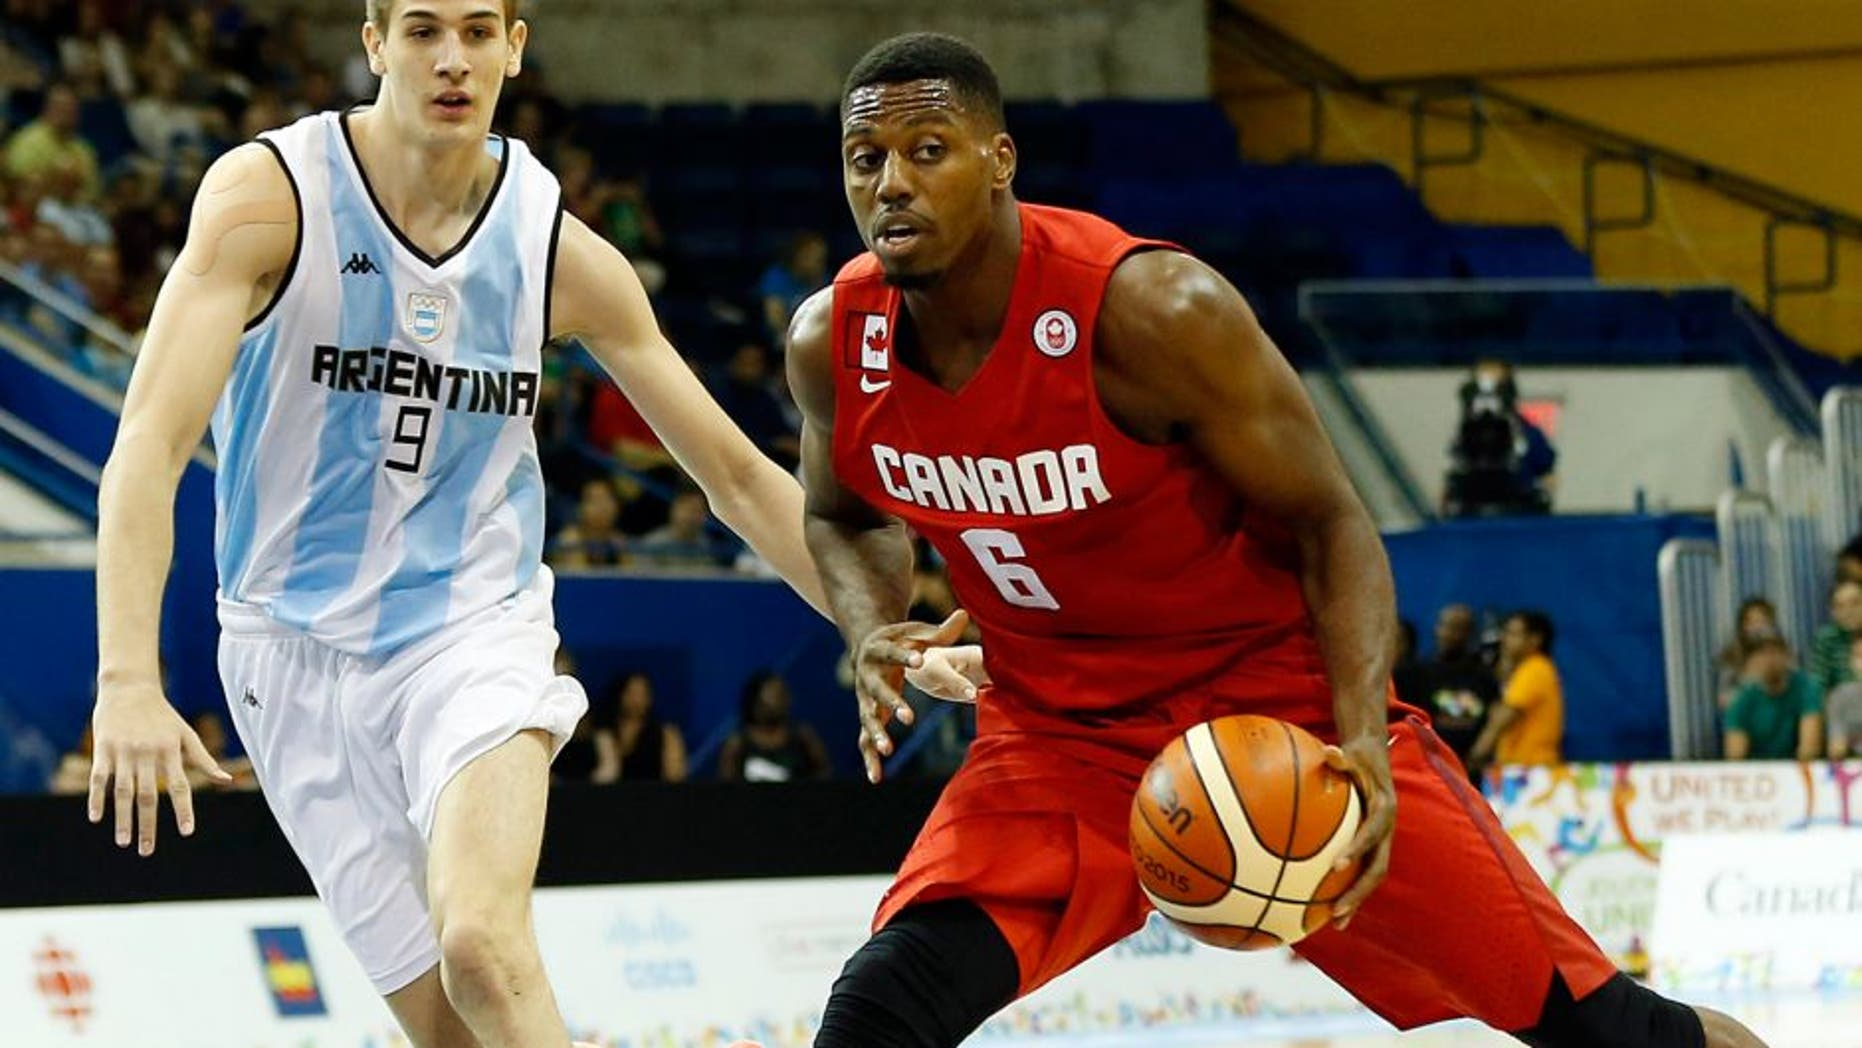 Jul 22, 2015; Toronto, Ontario, CAN; Canada forward Melvin Ejim (6) drives to the basket against Argentina forward Nicolas Brussino (9) in the men's basketball preliminary round during the 2015 Pan Am Games at Ryerson Athletic Centre. Mandatory Credit: Geoff Burke-USA TODAY Sports